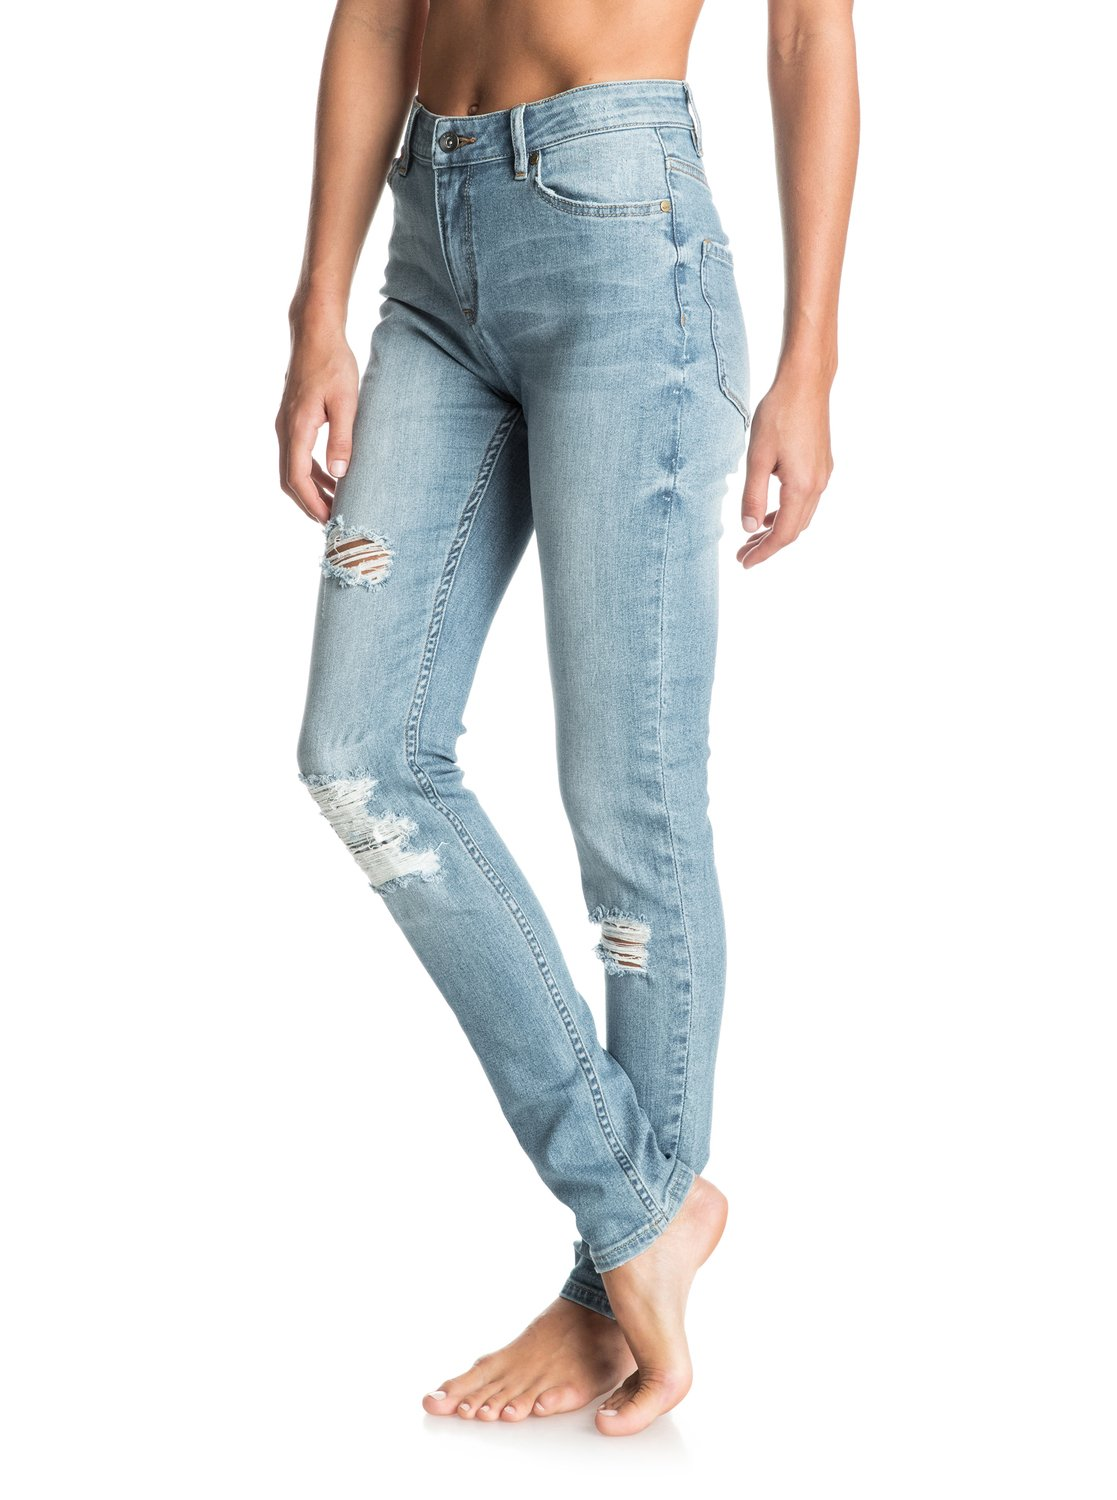 Free shipping & returns on high-waisted jeans for women at distrib-u5b2od.ga Shop for high waisted jeans by leg style, wash, waist size, and more from top brands. Free shipping and returns.